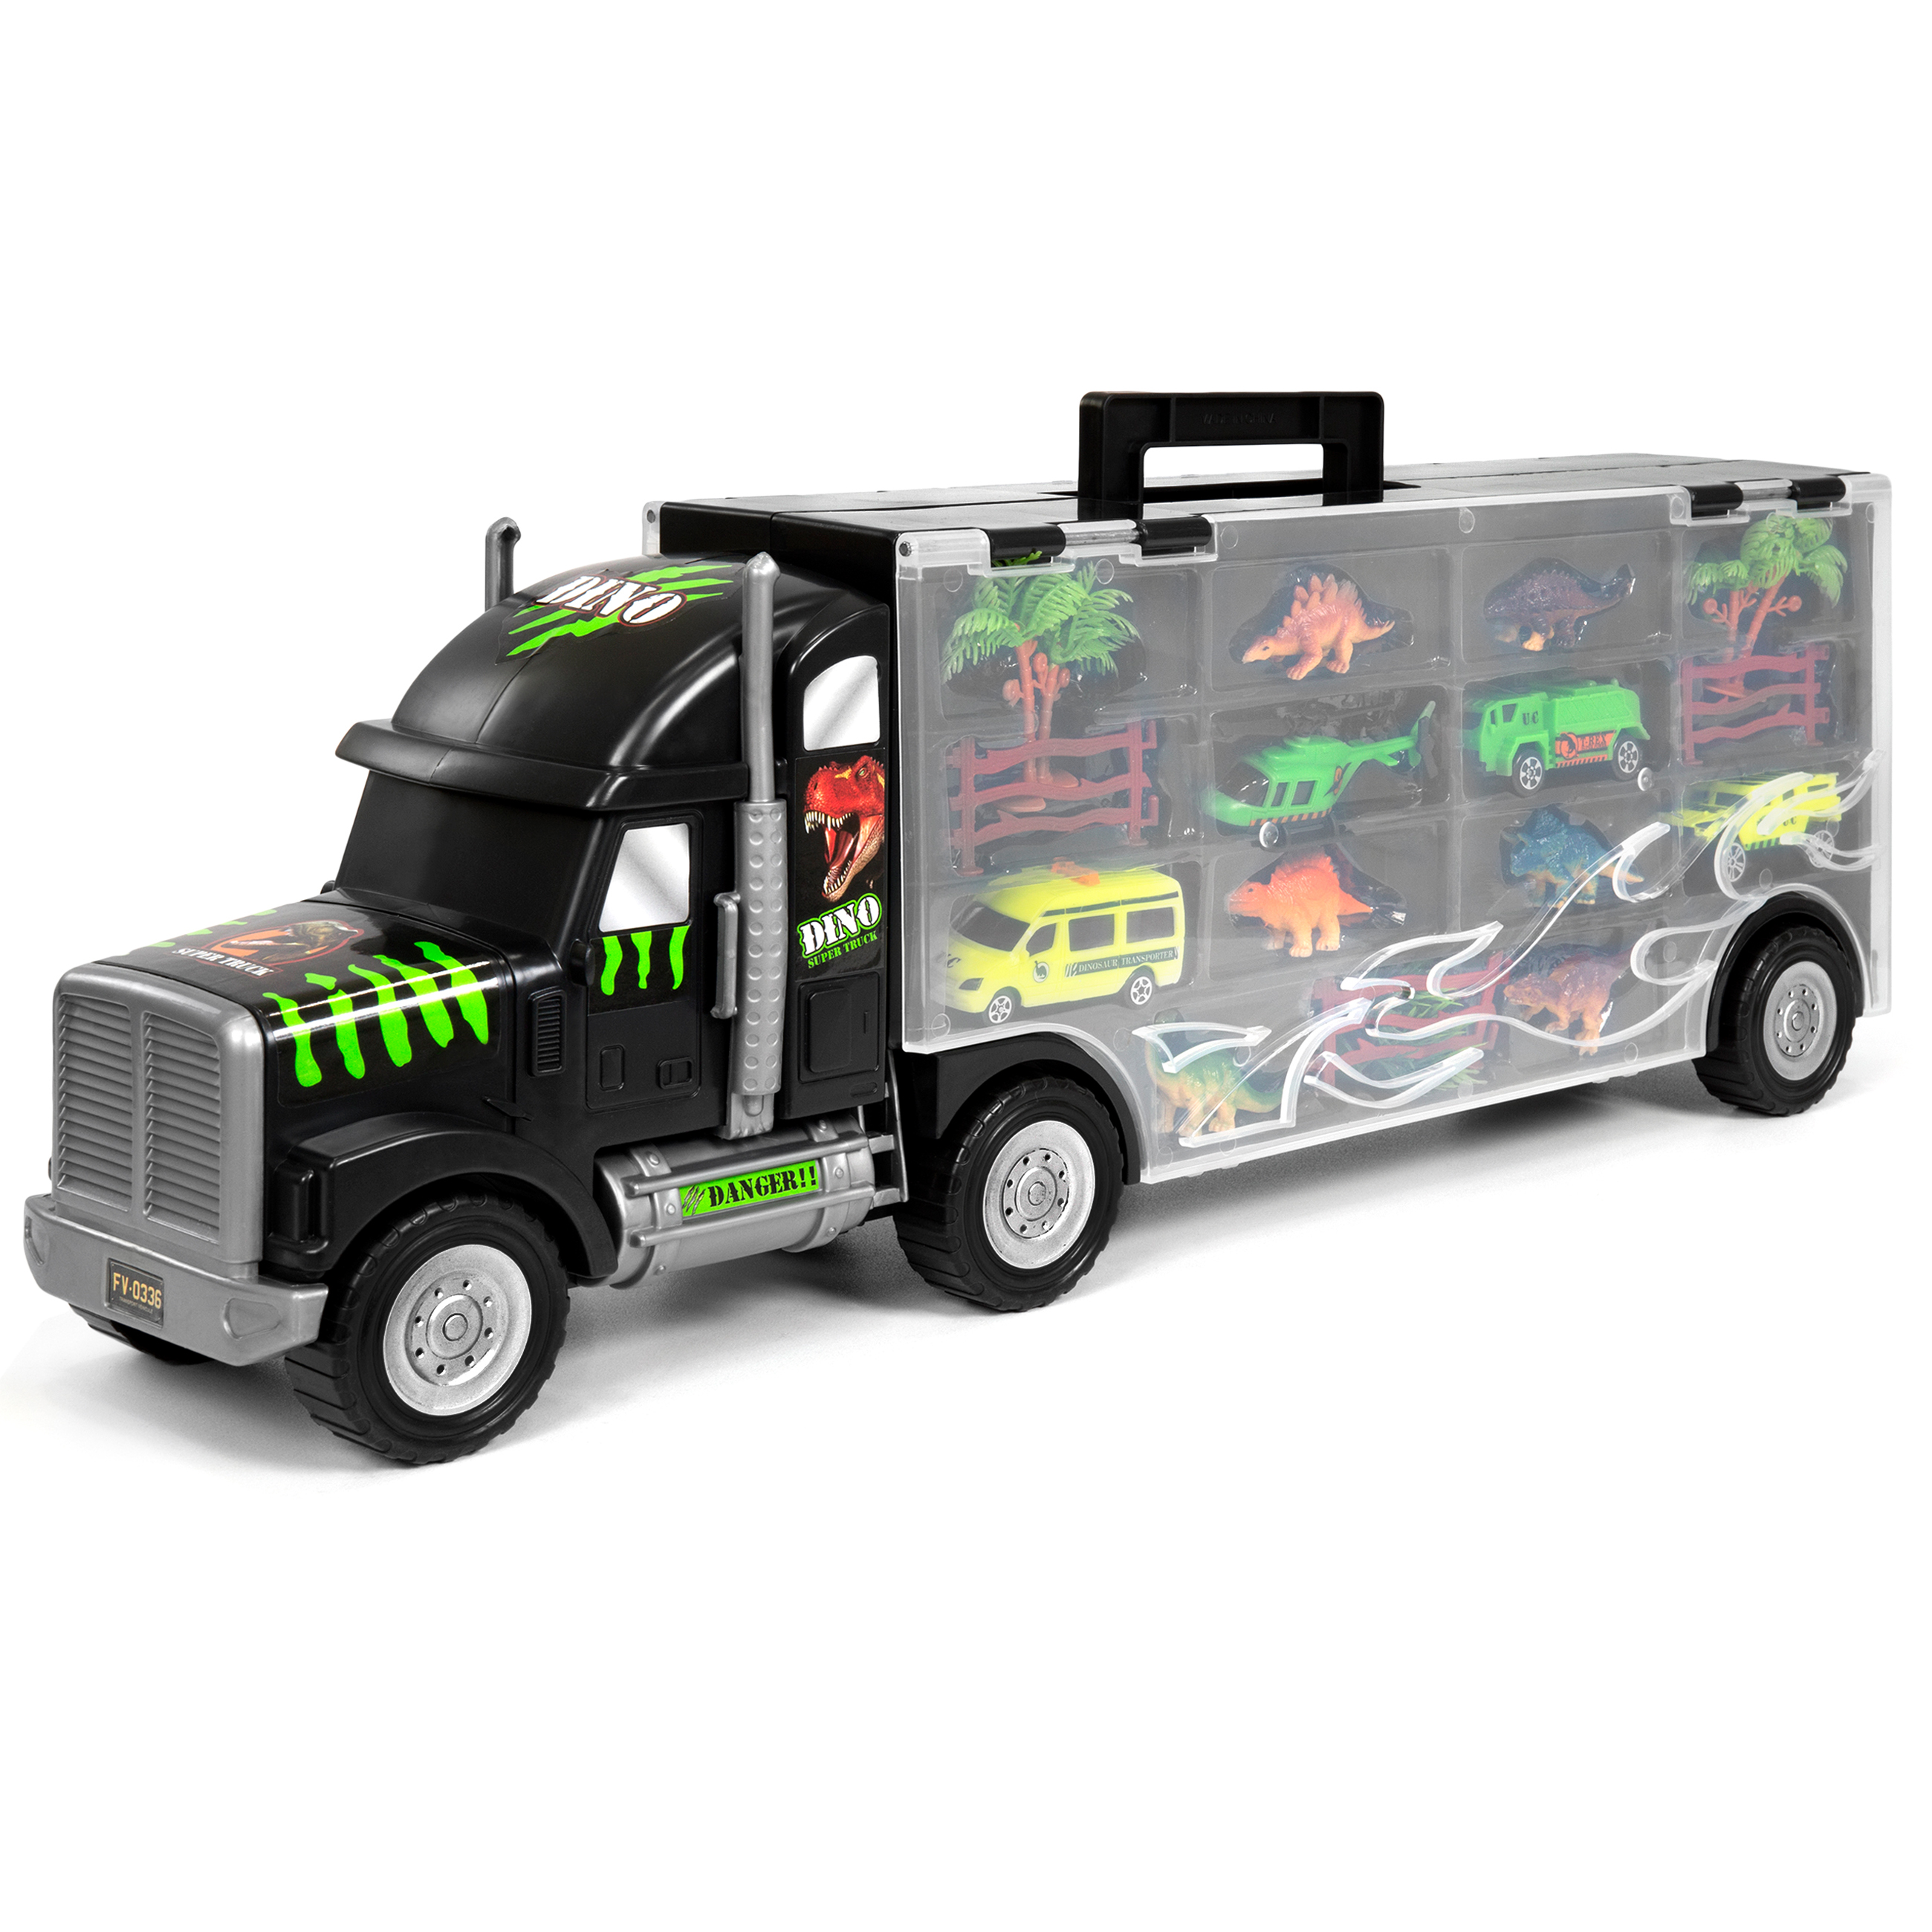 "Best Choice Products 22"" 16-Piece Kids Giant Transport Carrier Semi Truck Car W/ Dinosaur Figures Helicopter Jeep Cars"